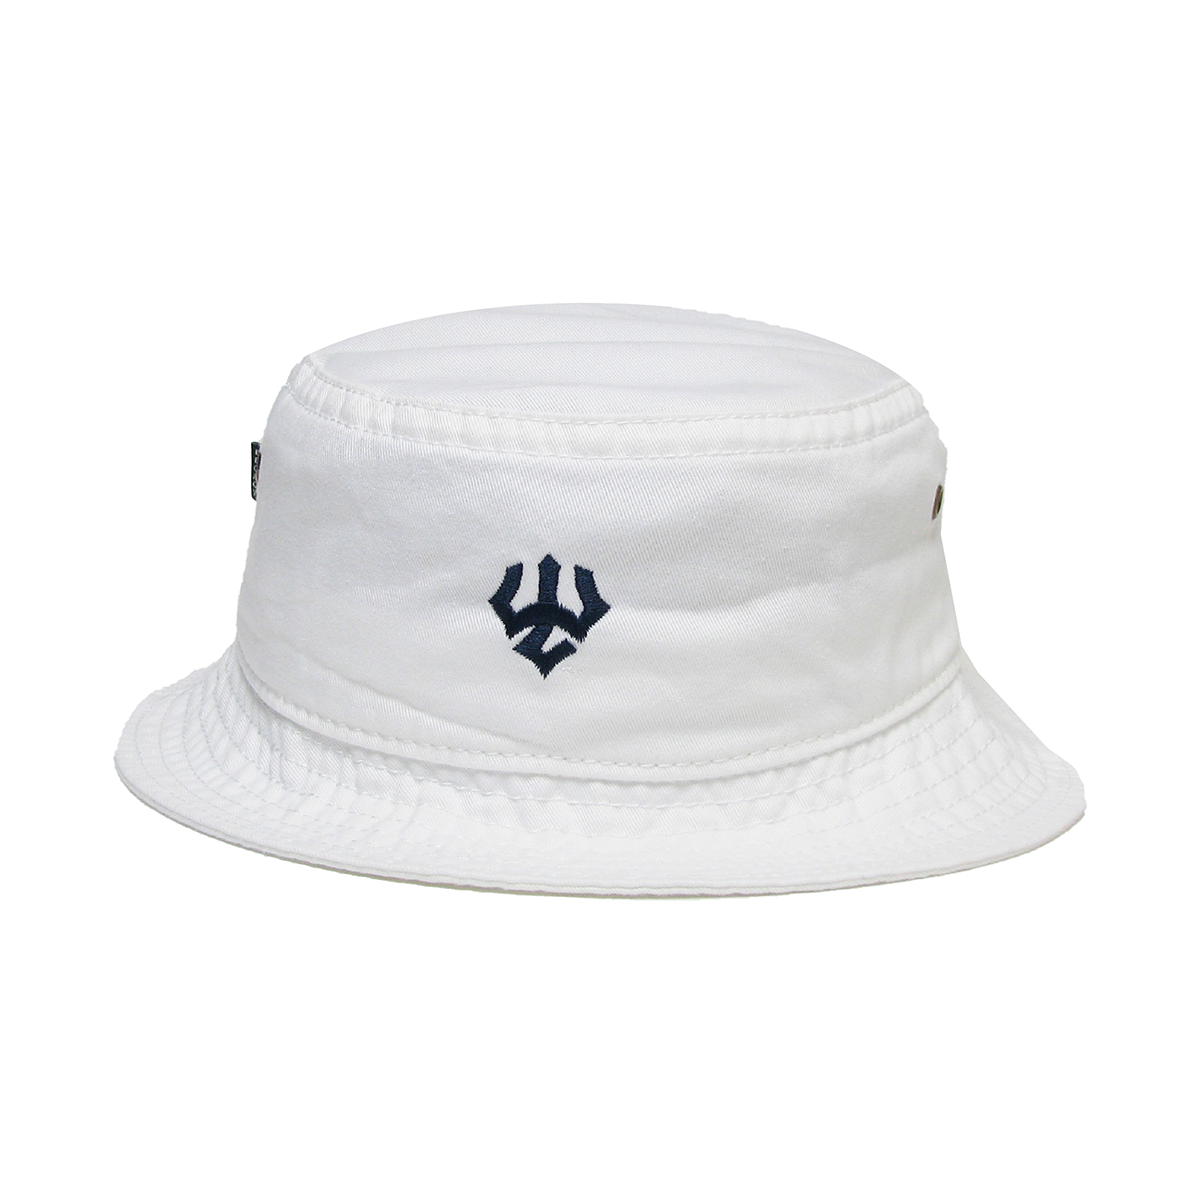 Image For Legacy Trident Bucket Hat, Navy or White